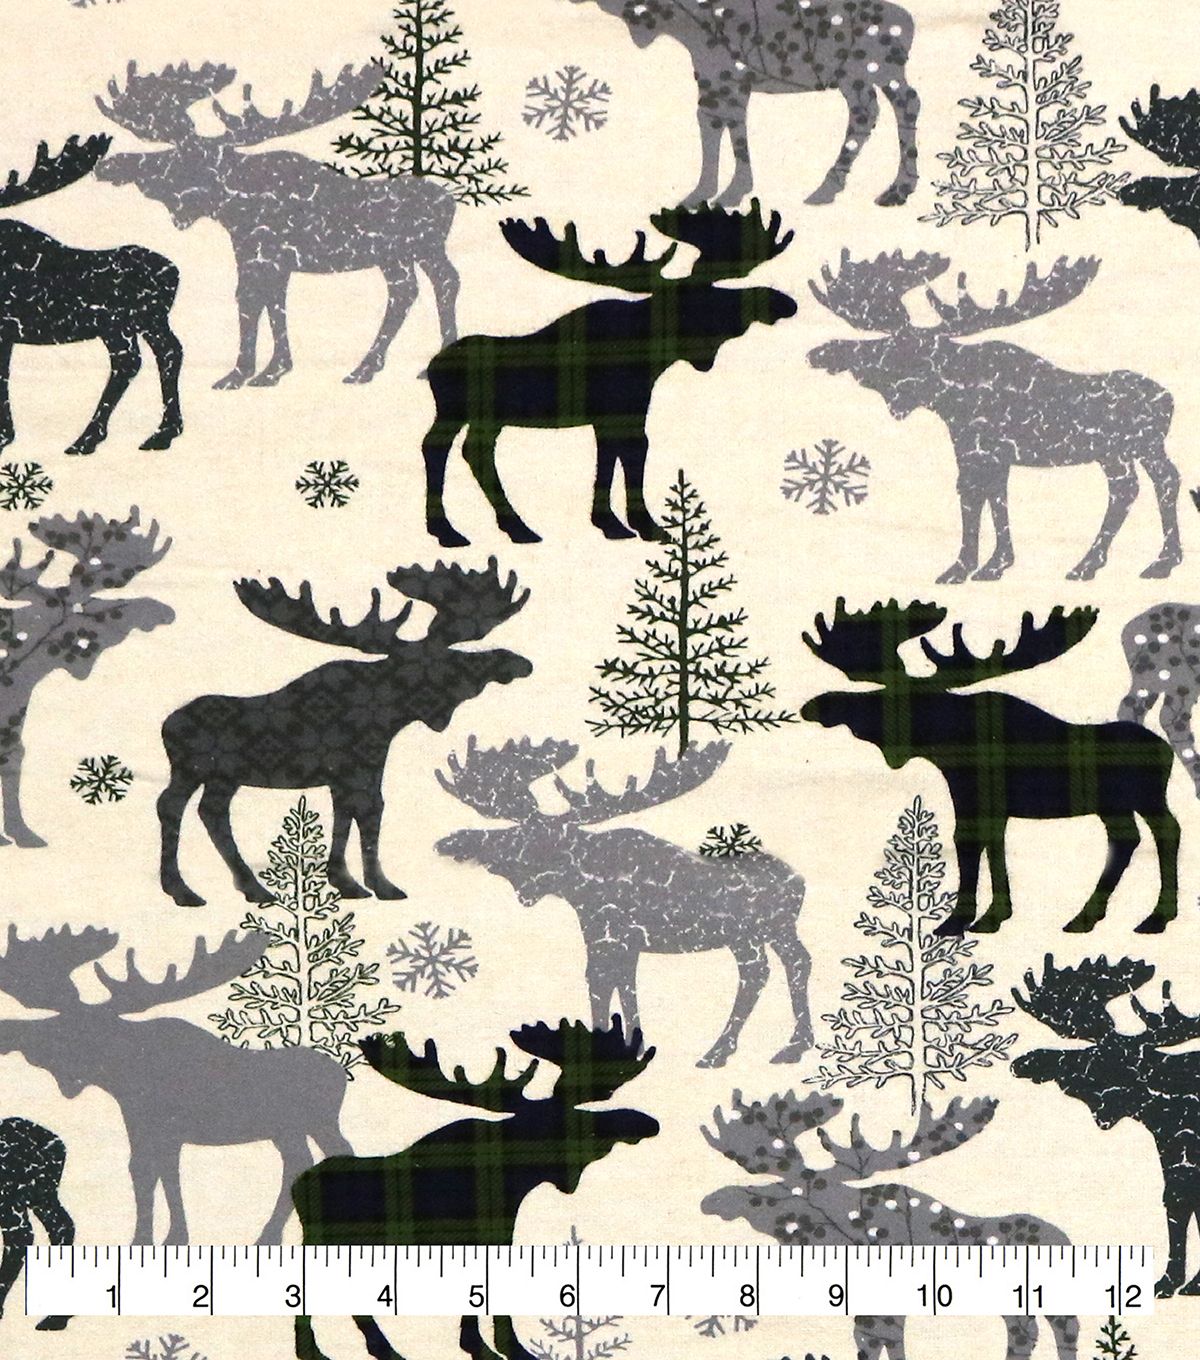 Super Snuggle Flannel Fabric-Patterned Blackwatch Moose